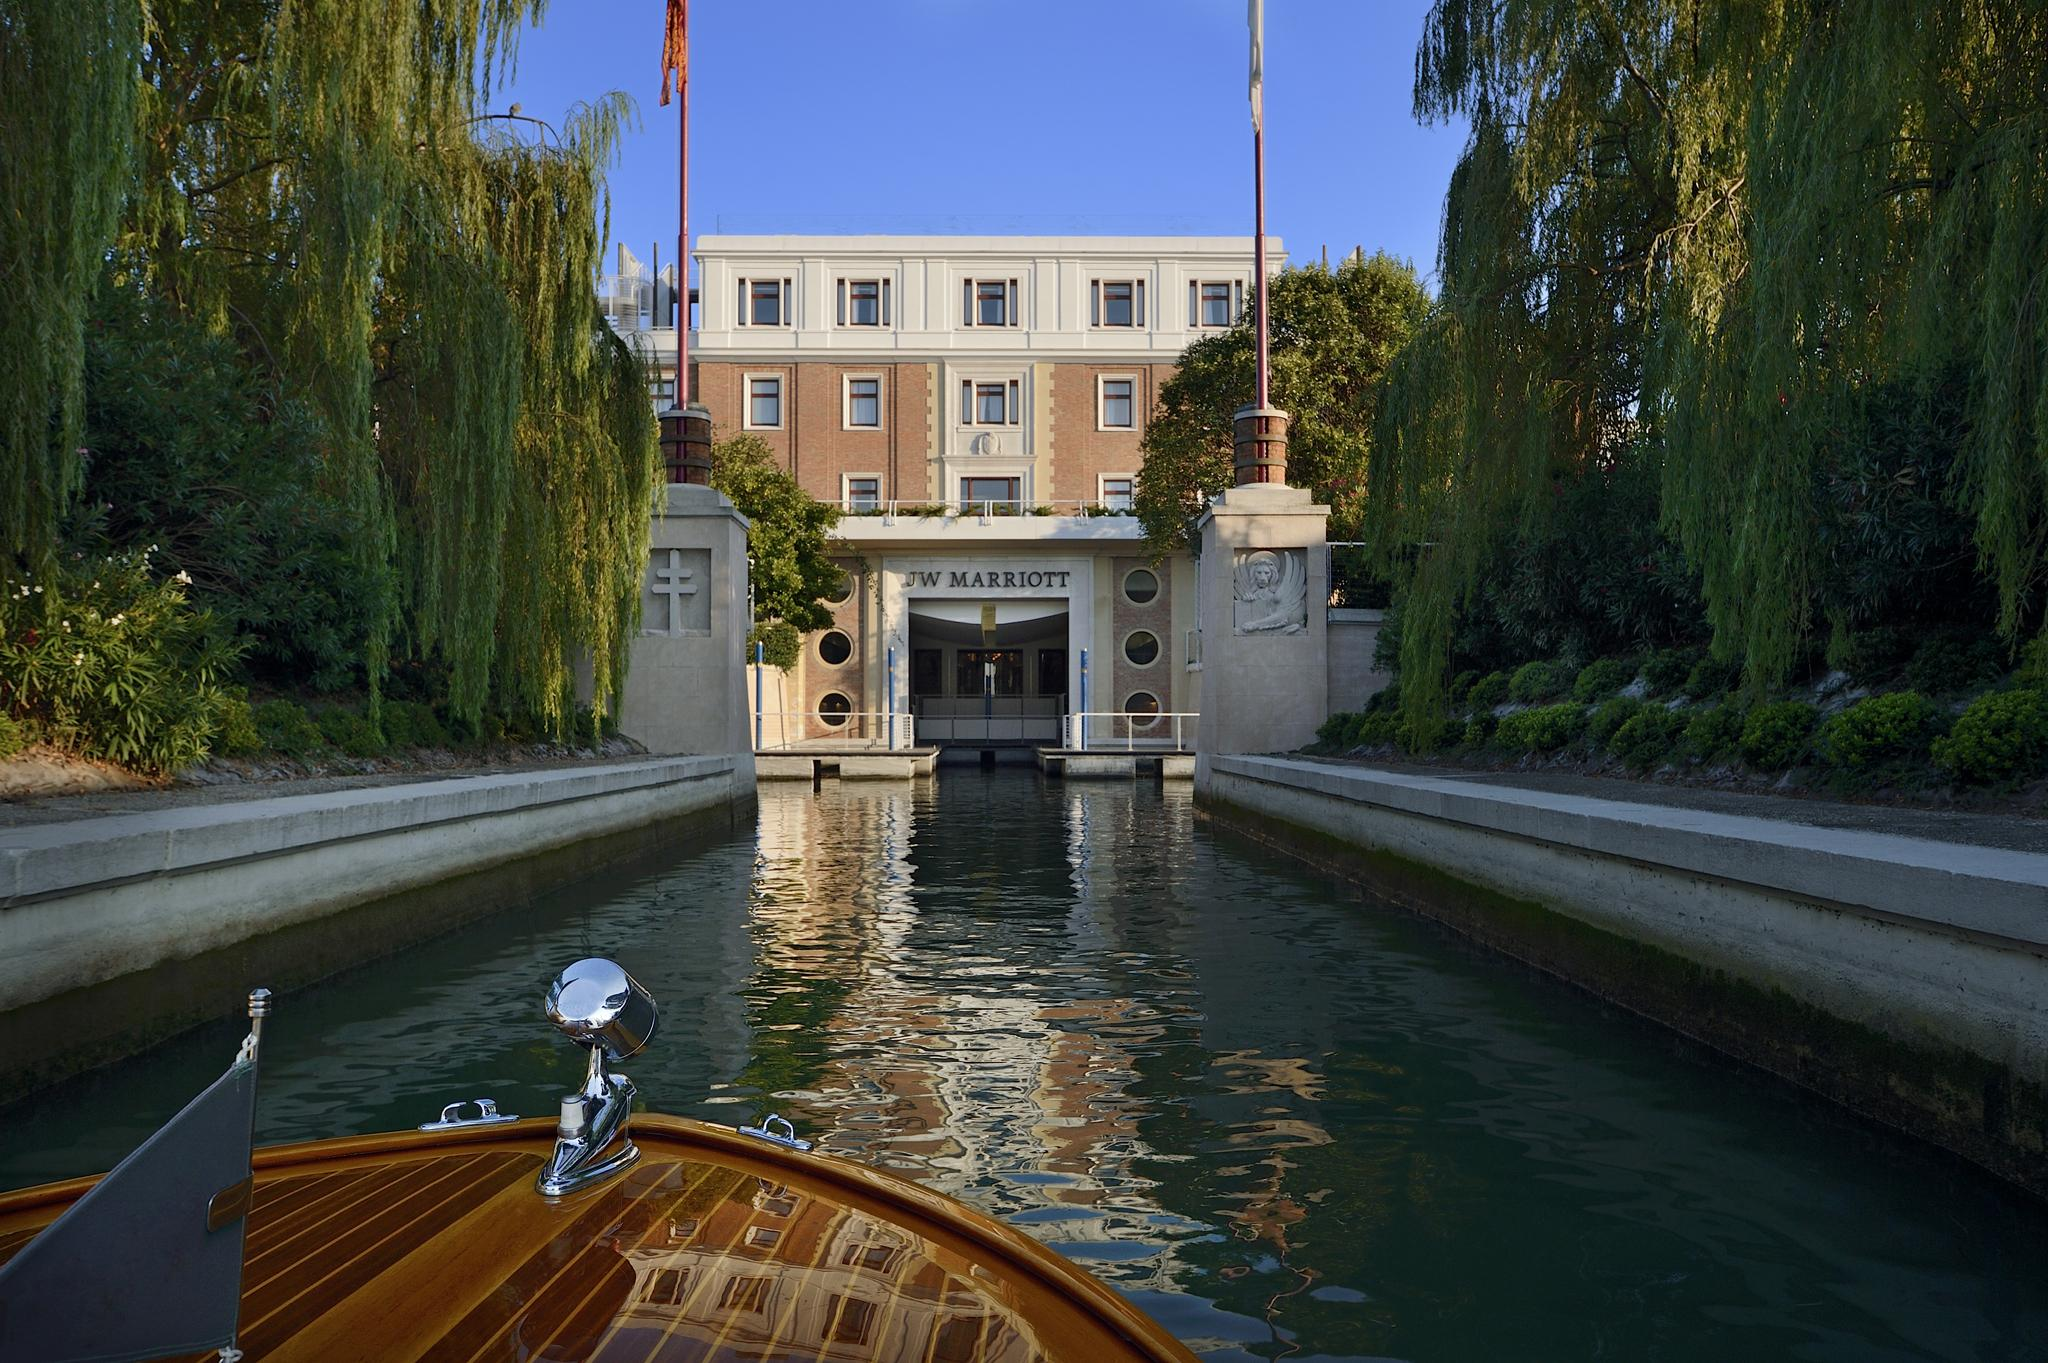 Jw marriott venice hotel review escape the crowds on a for Luxury independent hotels